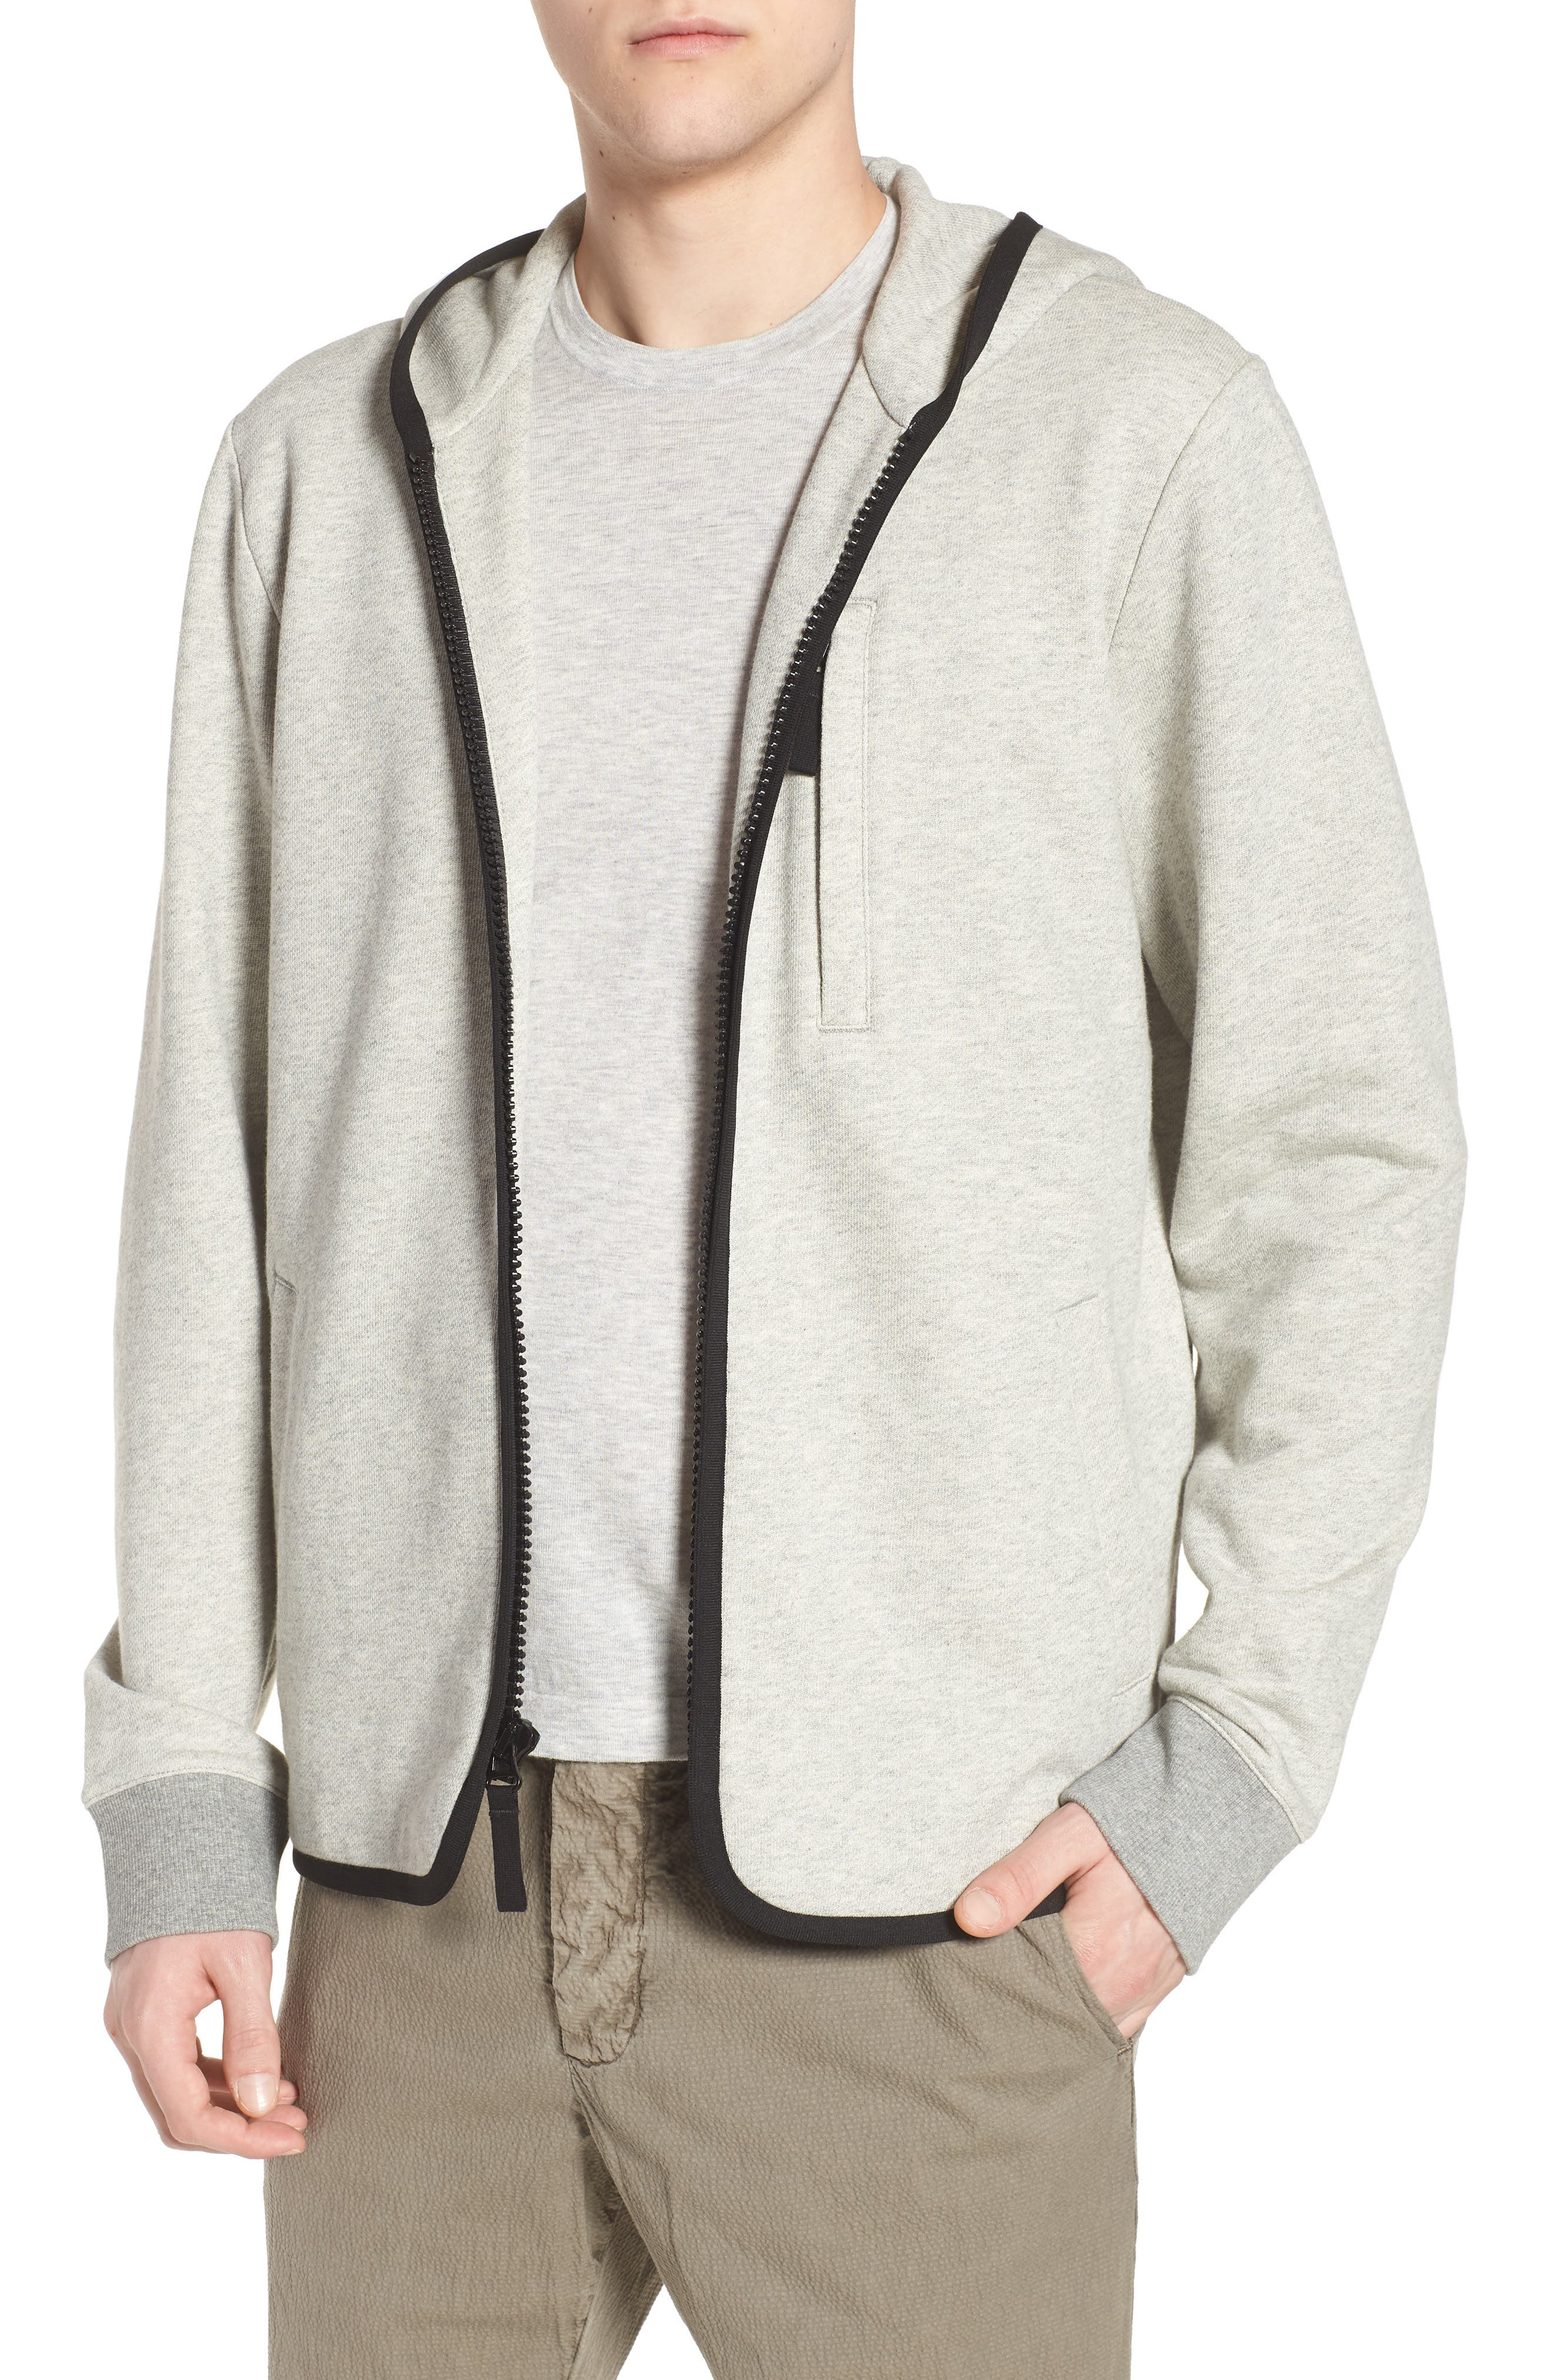 French Terry Zip Hoodie,                             Main thumbnail 1, color,                             Heather Grey/ Black